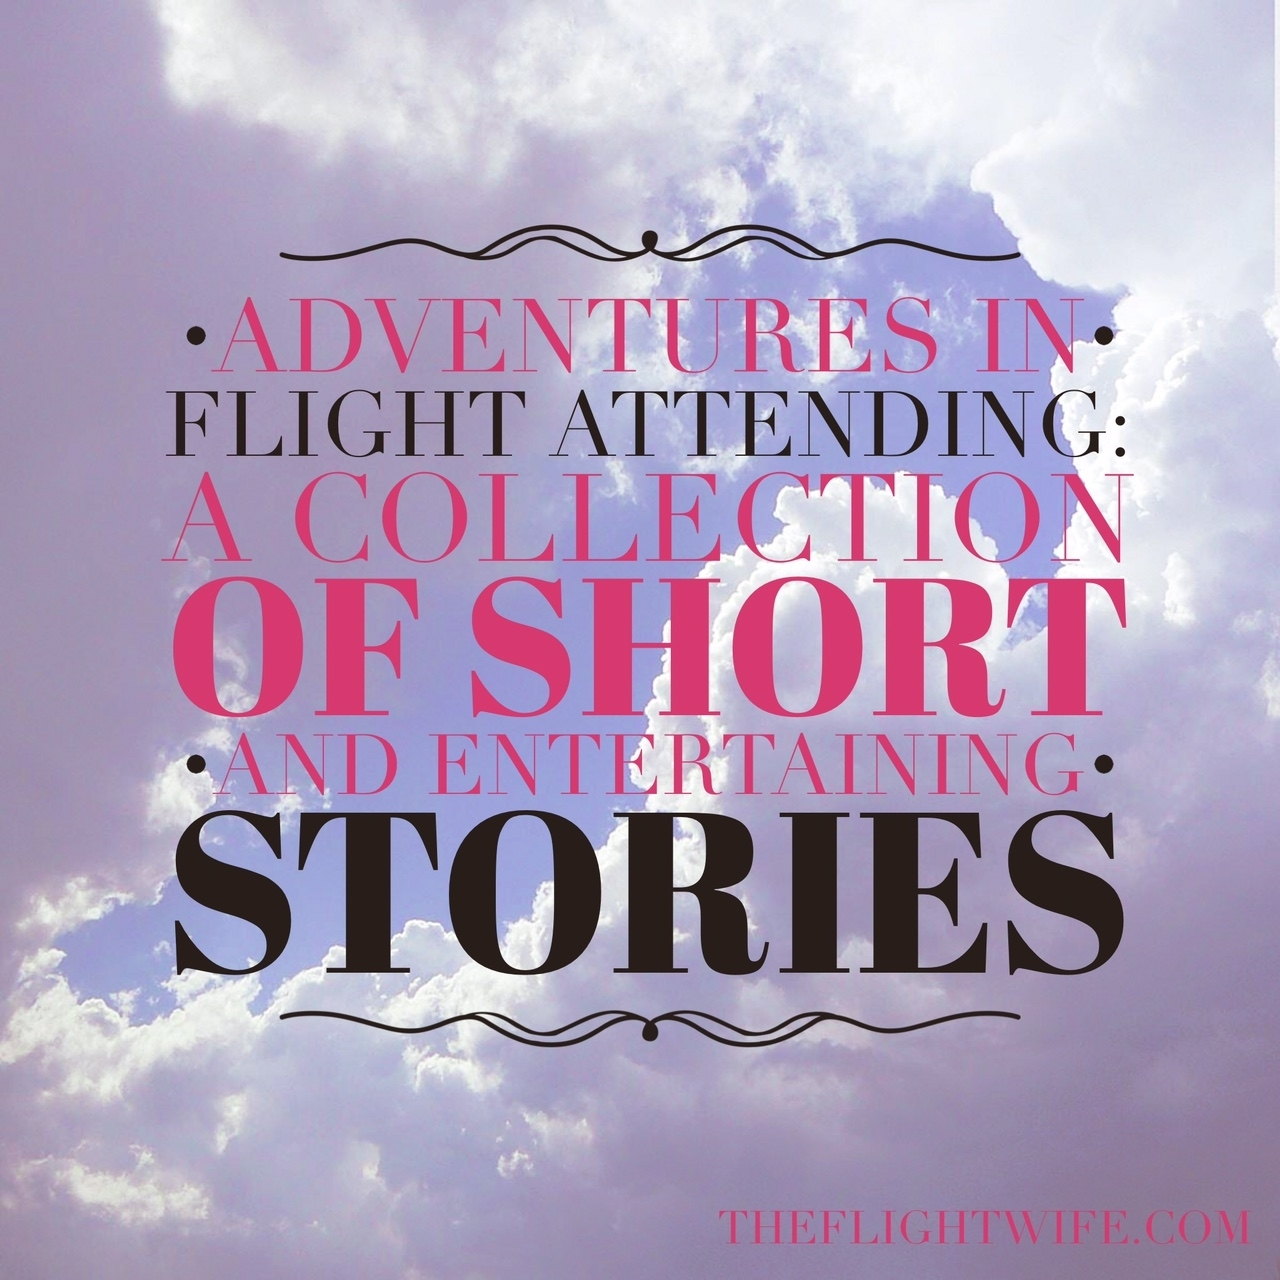 Adventures In Flight Attending: A Collection Of Short (And